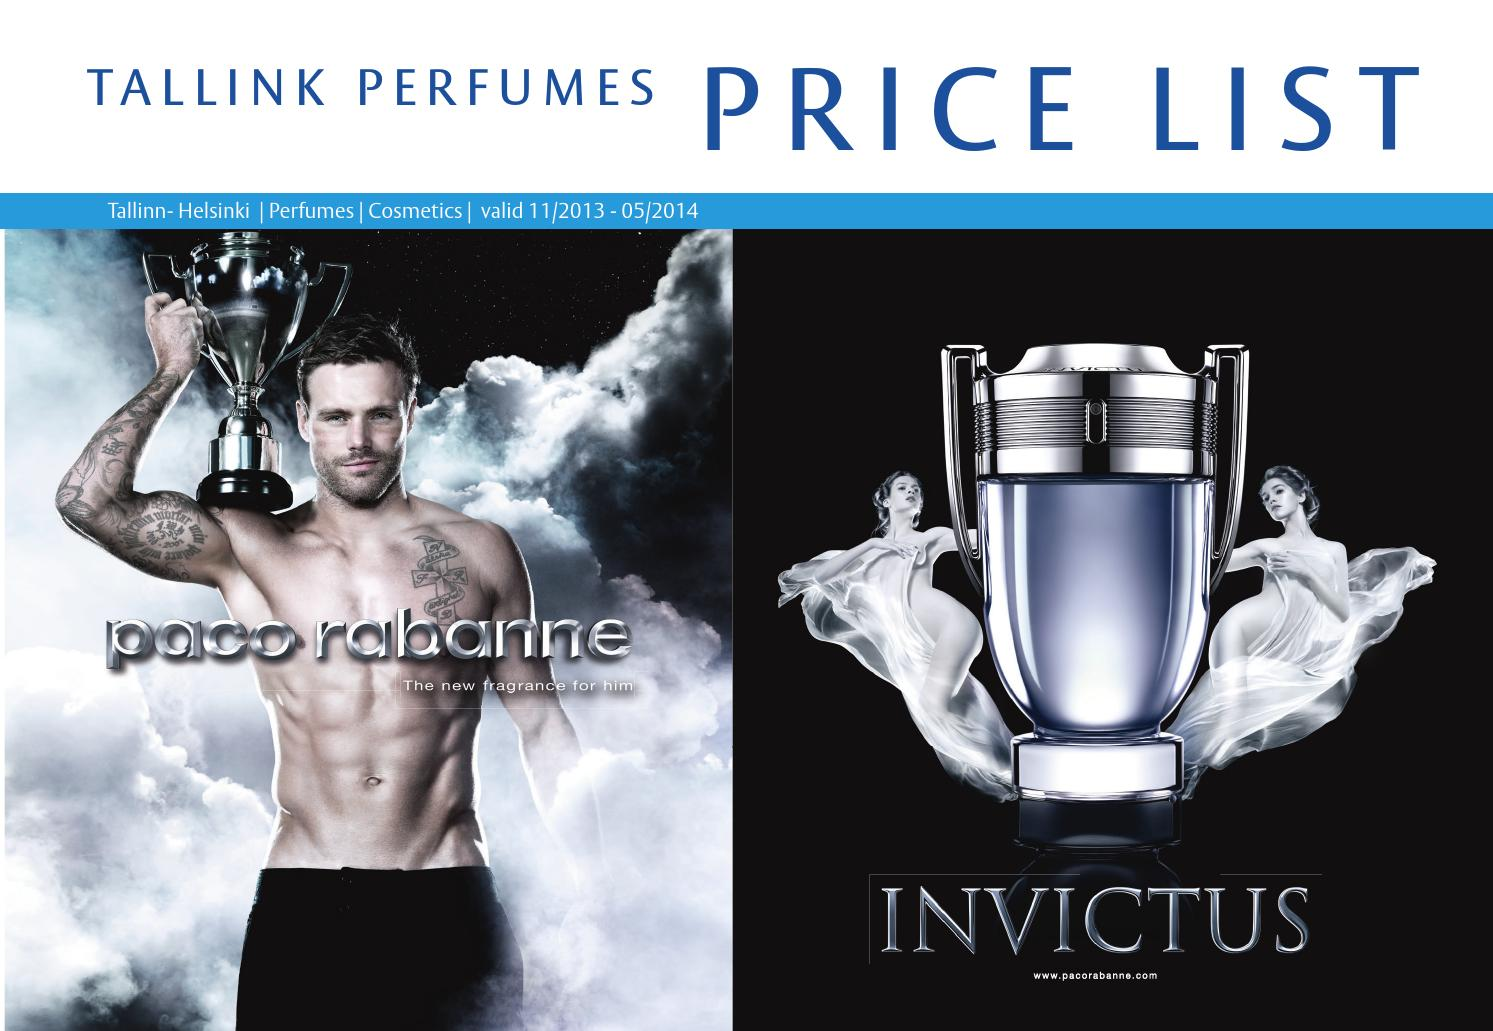 6728d87469d Tallink Price List Perfumes | Cosmetics 11/2013 - 05/2014 by ...